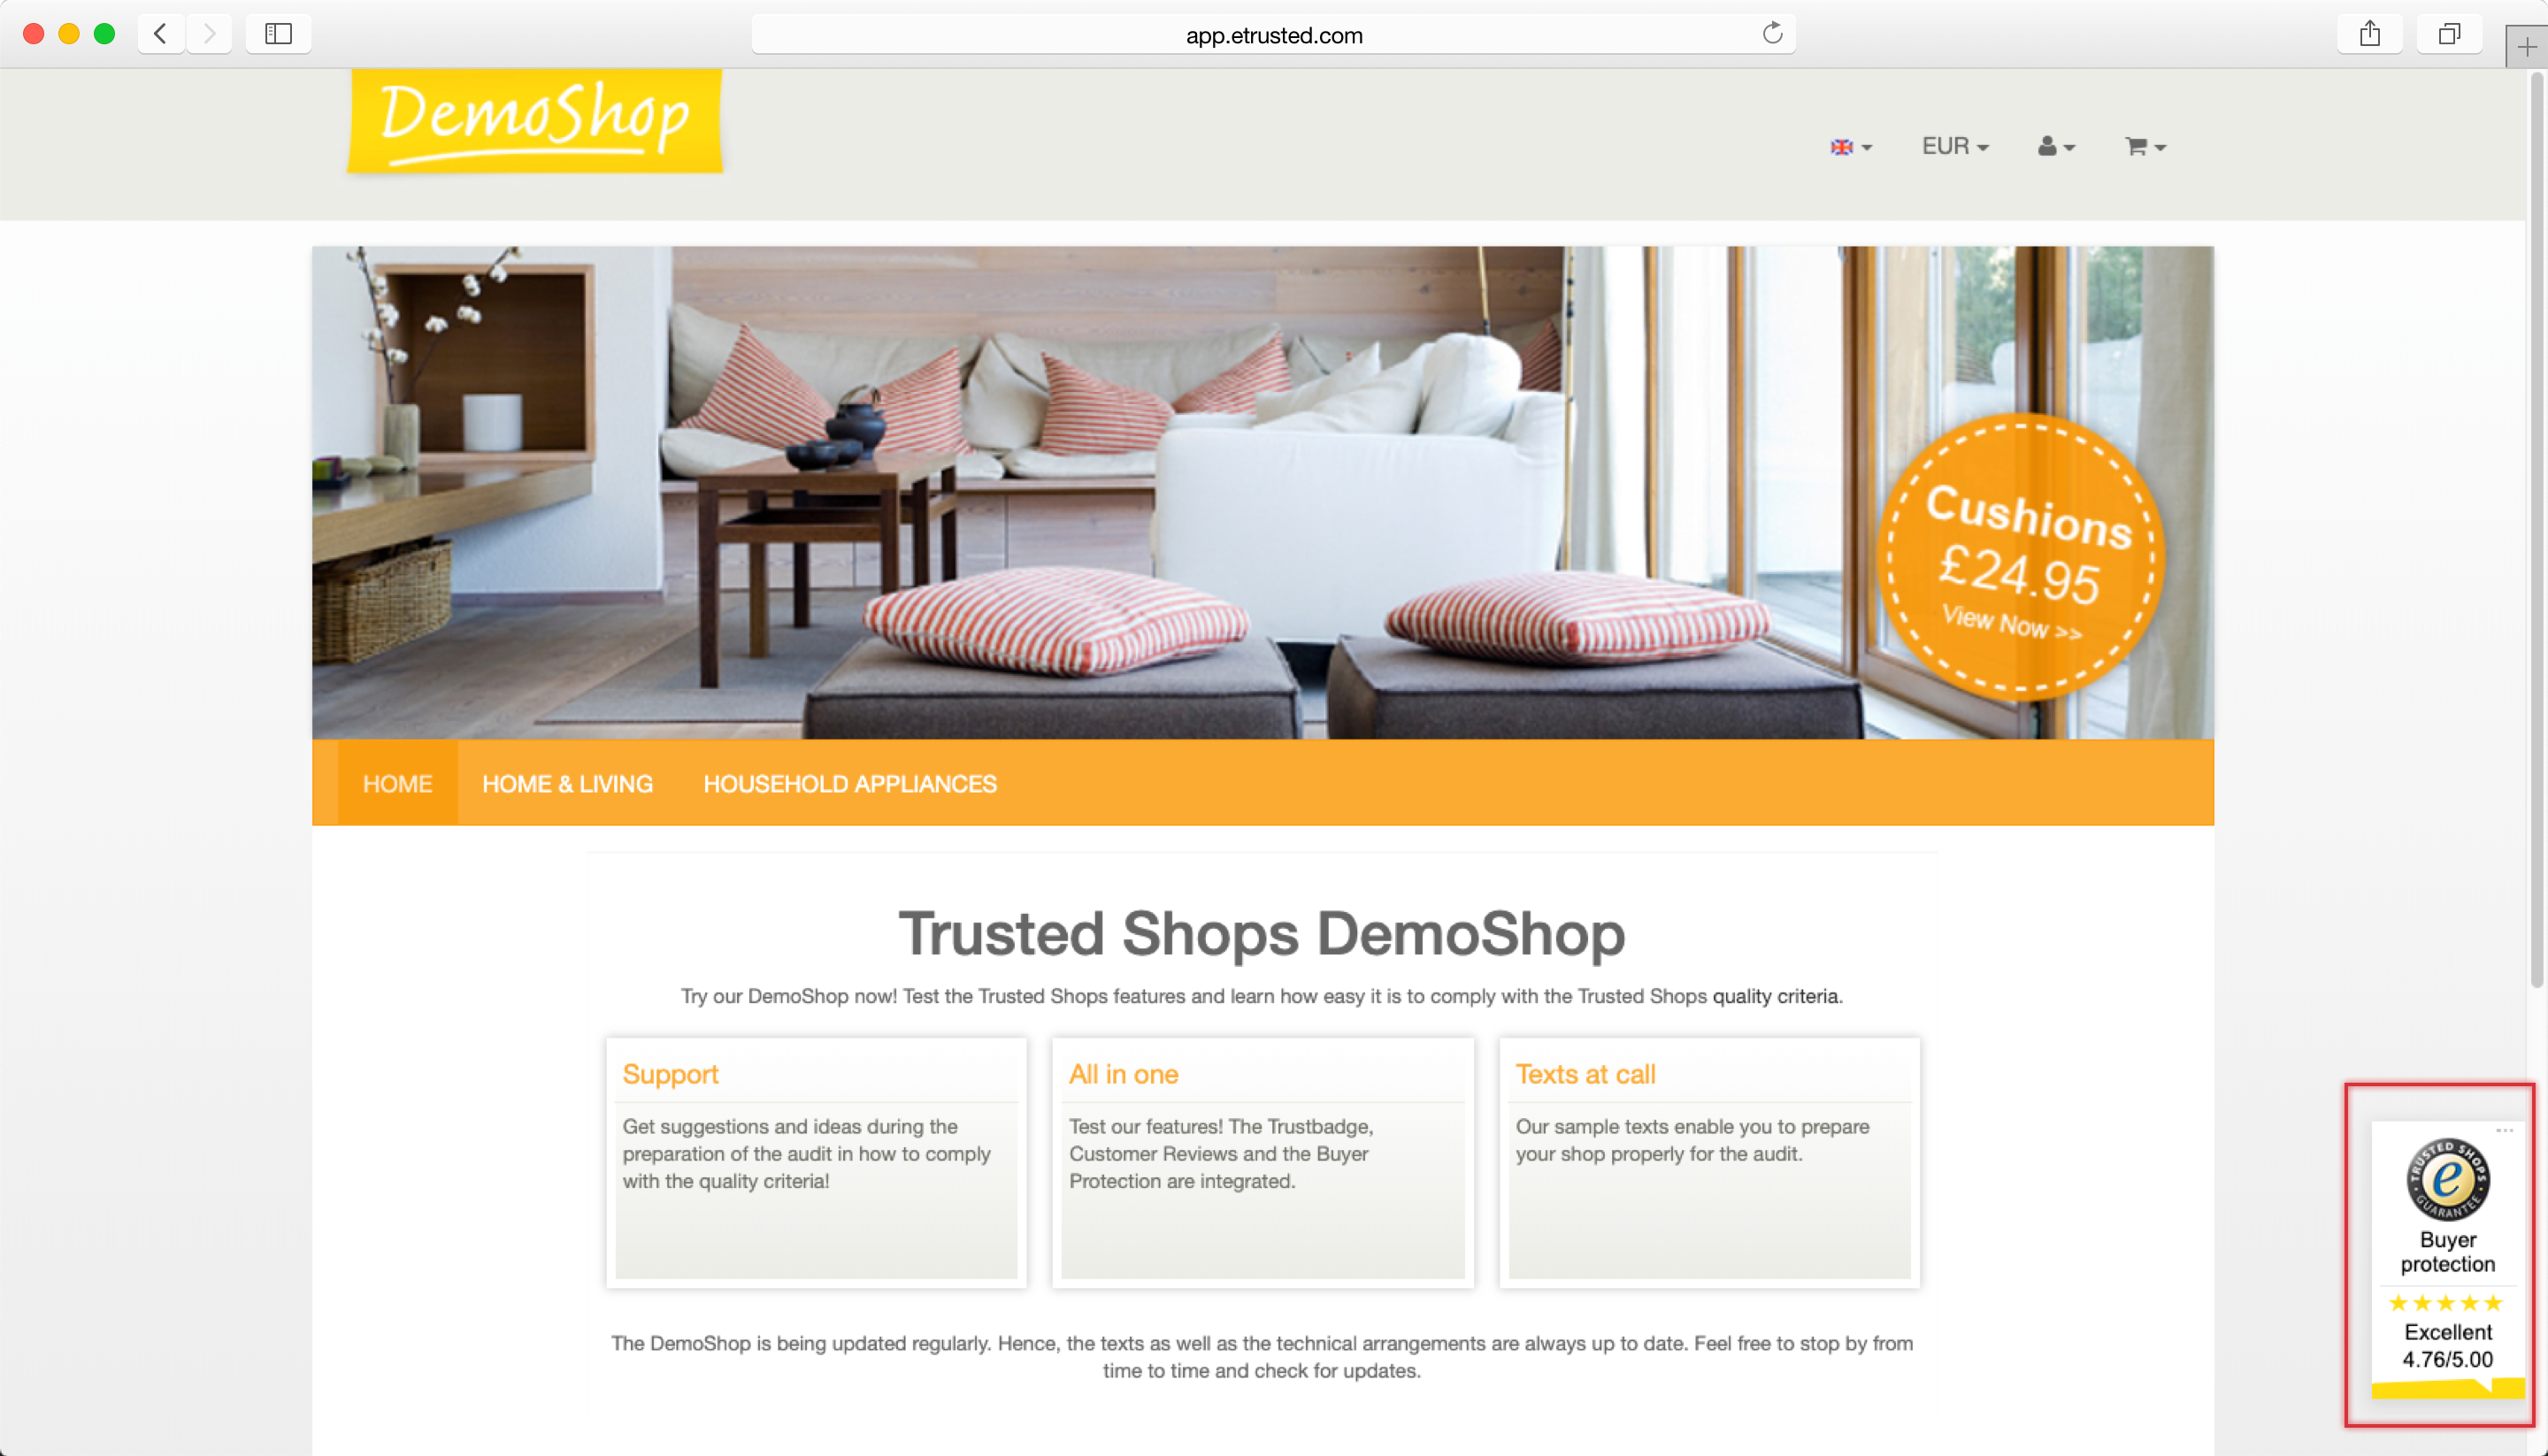 Trustbadge being displayed in the bottom right corner of an online shop